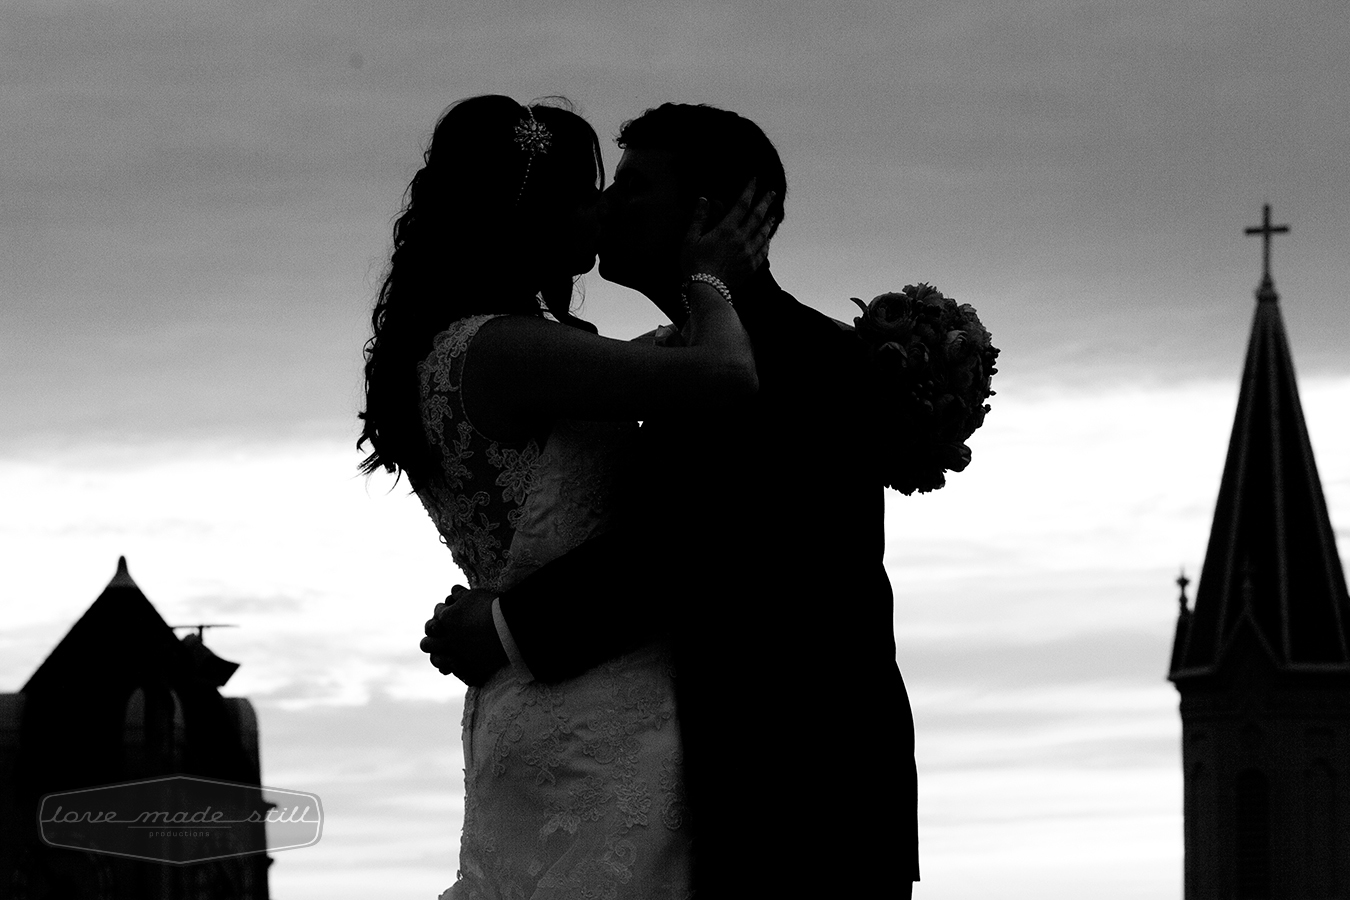 Newlyweds kiss is captured as a silhouette with church in background